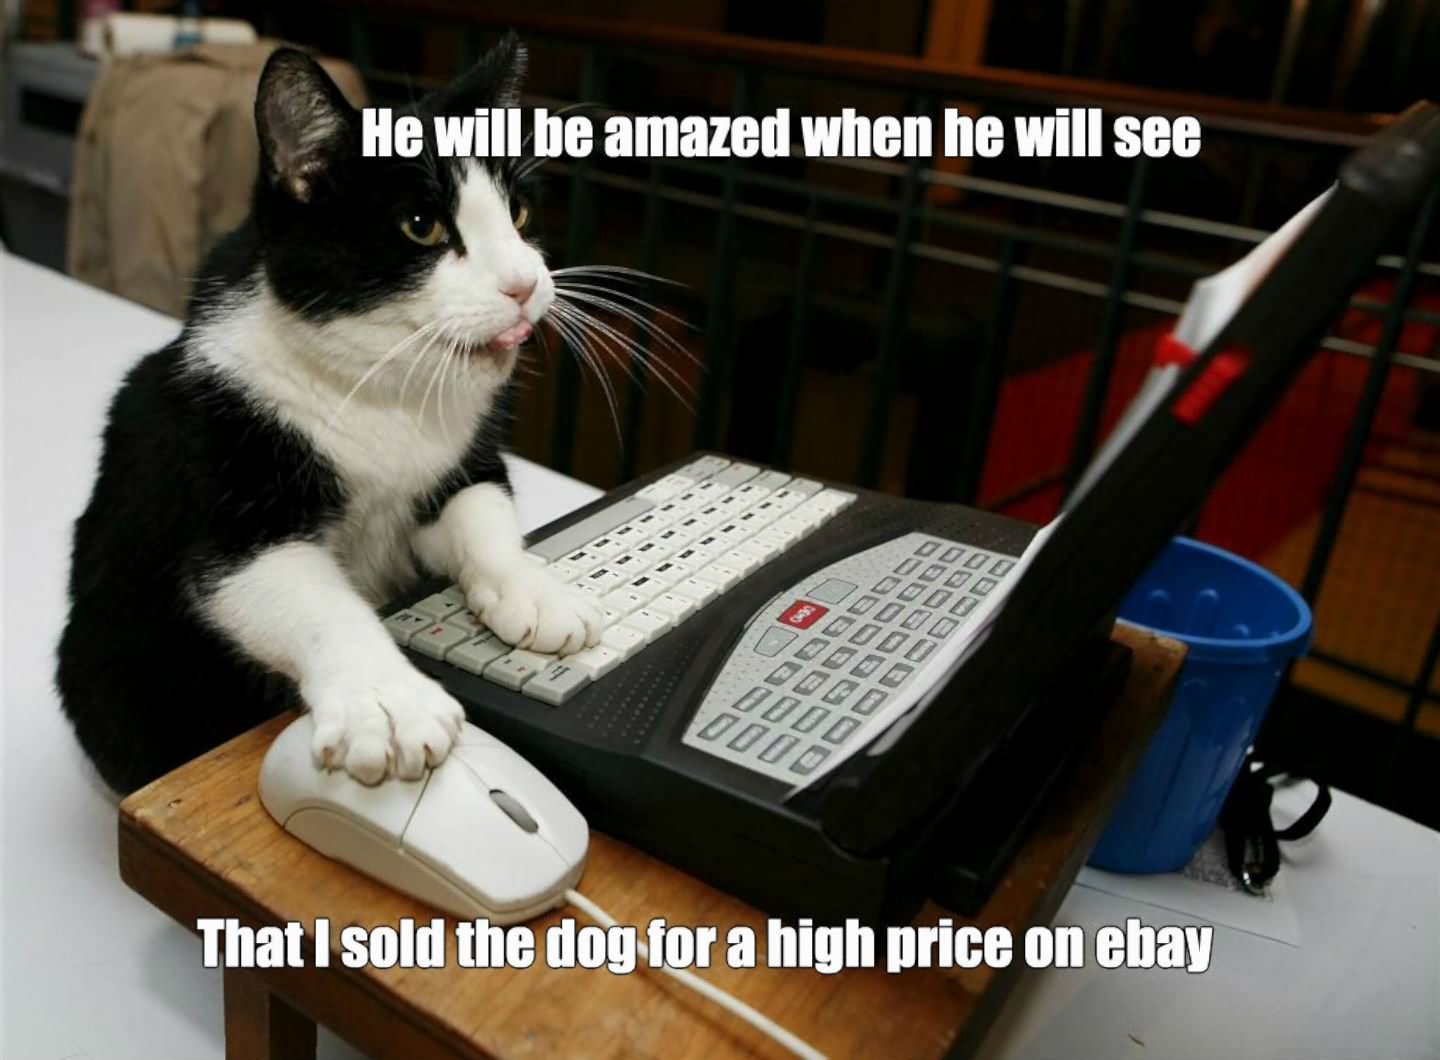 He Will Be Amazed When He Will See That I Sold The Dog For A High Price On Ebay Funny Computer Meme Image